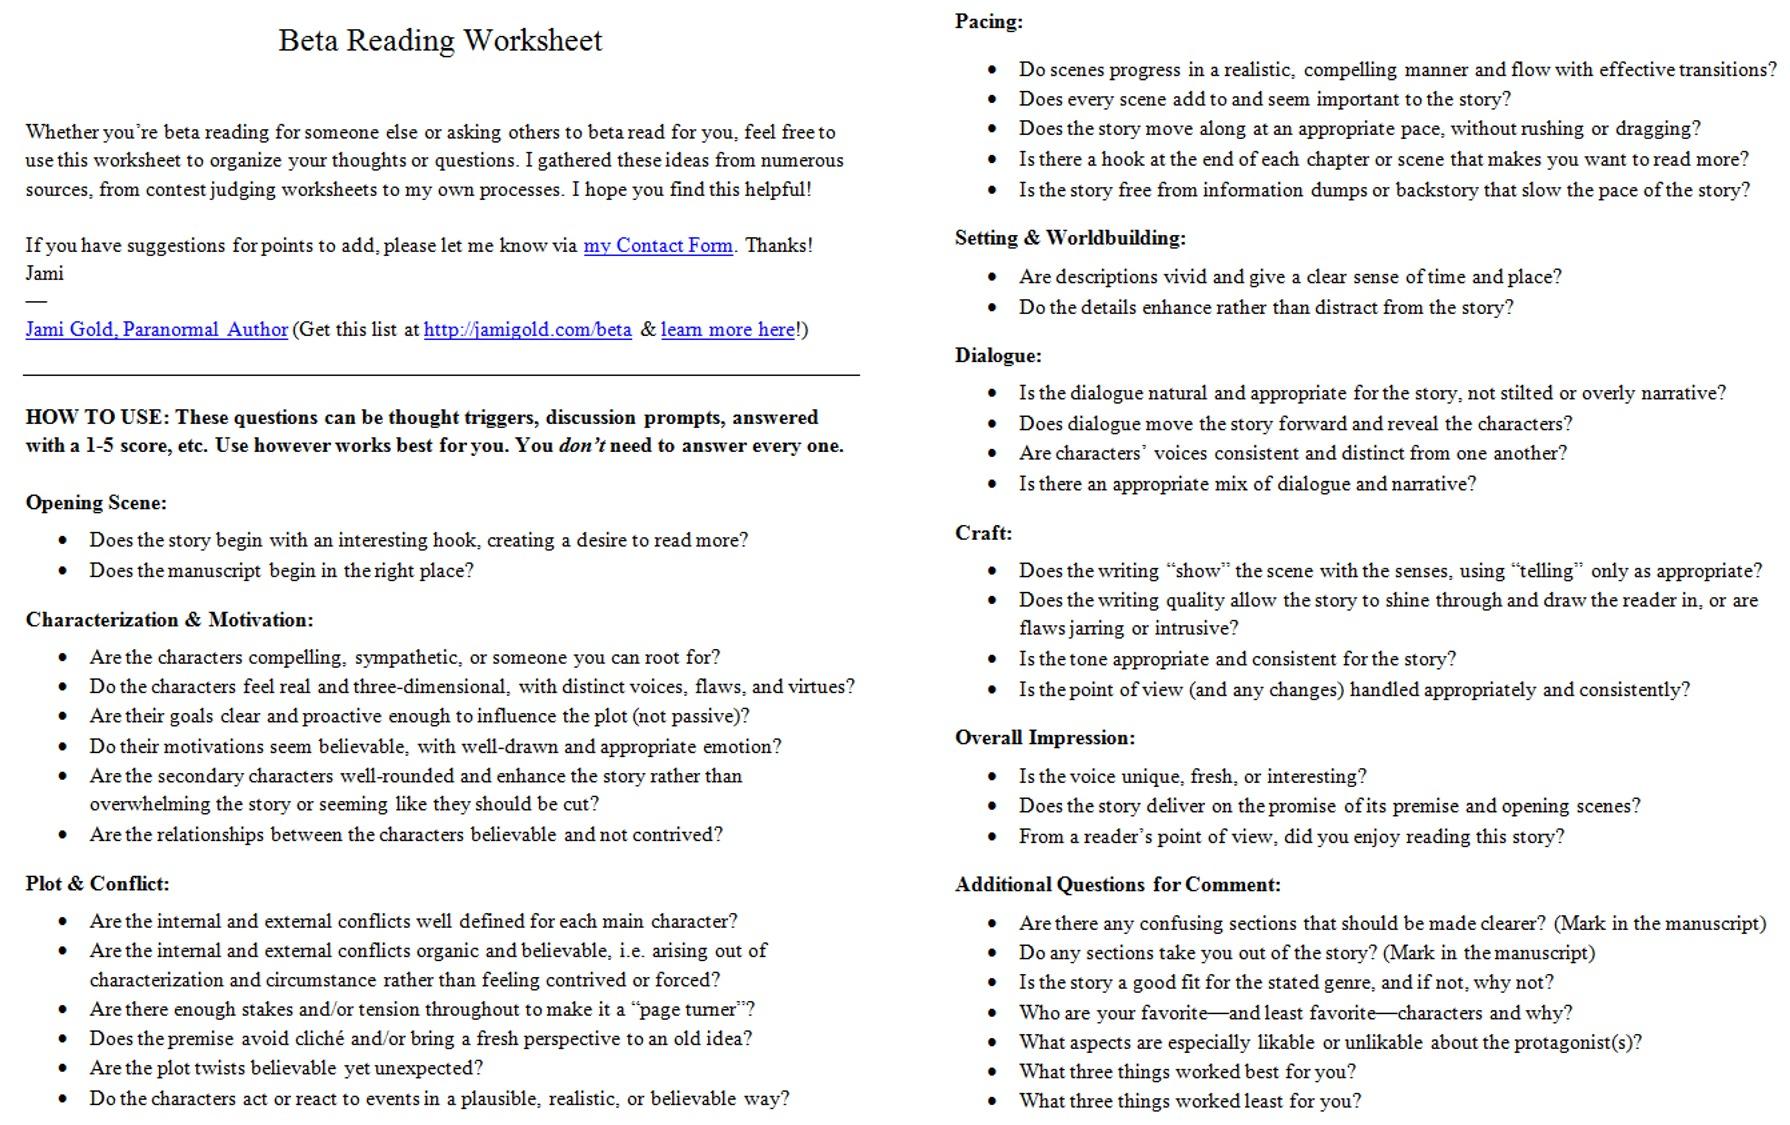 Proatmealus  Unusual Worksheets For Writers  Jami Gold Paranormal Author With Lovable Screen Shot Of The Twopage Beta Reading Worksheet With Astounding Kindergarten Calendar Worksheets Also Spanish Preterite Worksheet In Addition Multiplication Worksheets For Th Grade And Free Articulation Worksheets As Well As First Grade Graphing Worksheets Additionally Algebra   Geometry B Pythagorean Theorem Word Problems Worksheet Answers From Jamigoldcom With Proatmealus  Lovable Worksheets For Writers  Jami Gold Paranormal Author With Astounding Screen Shot Of The Twopage Beta Reading Worksheet And Unusual Kindergarten Calendar Worksheets Also Spanish Preterite Worksheet In Addition Multiplication Worksheets For Th Grade From Jamigoldcom